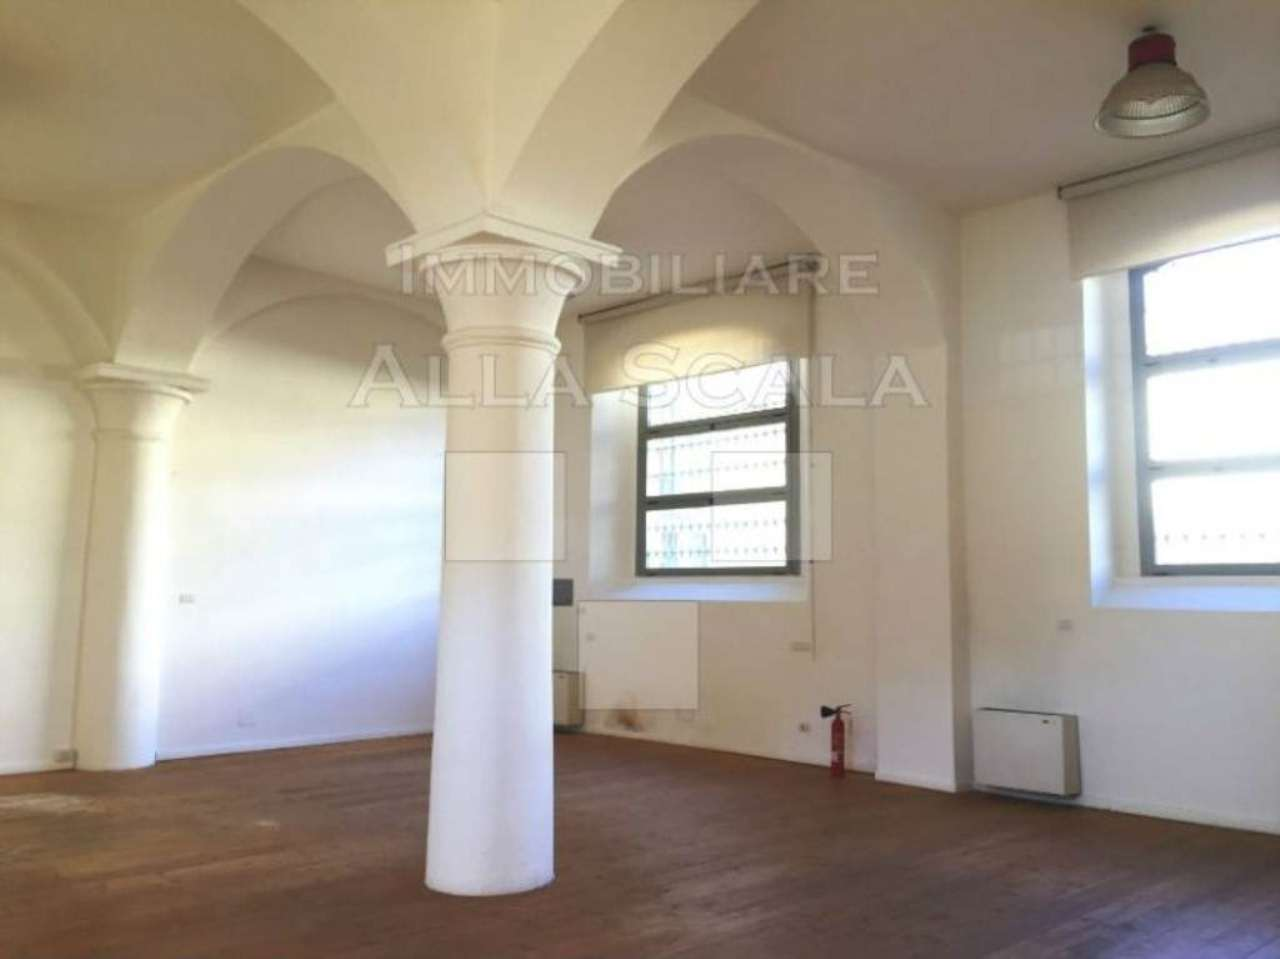 Loft open space in affitto a milano trovocasa for Casa con suite suocera in affitto